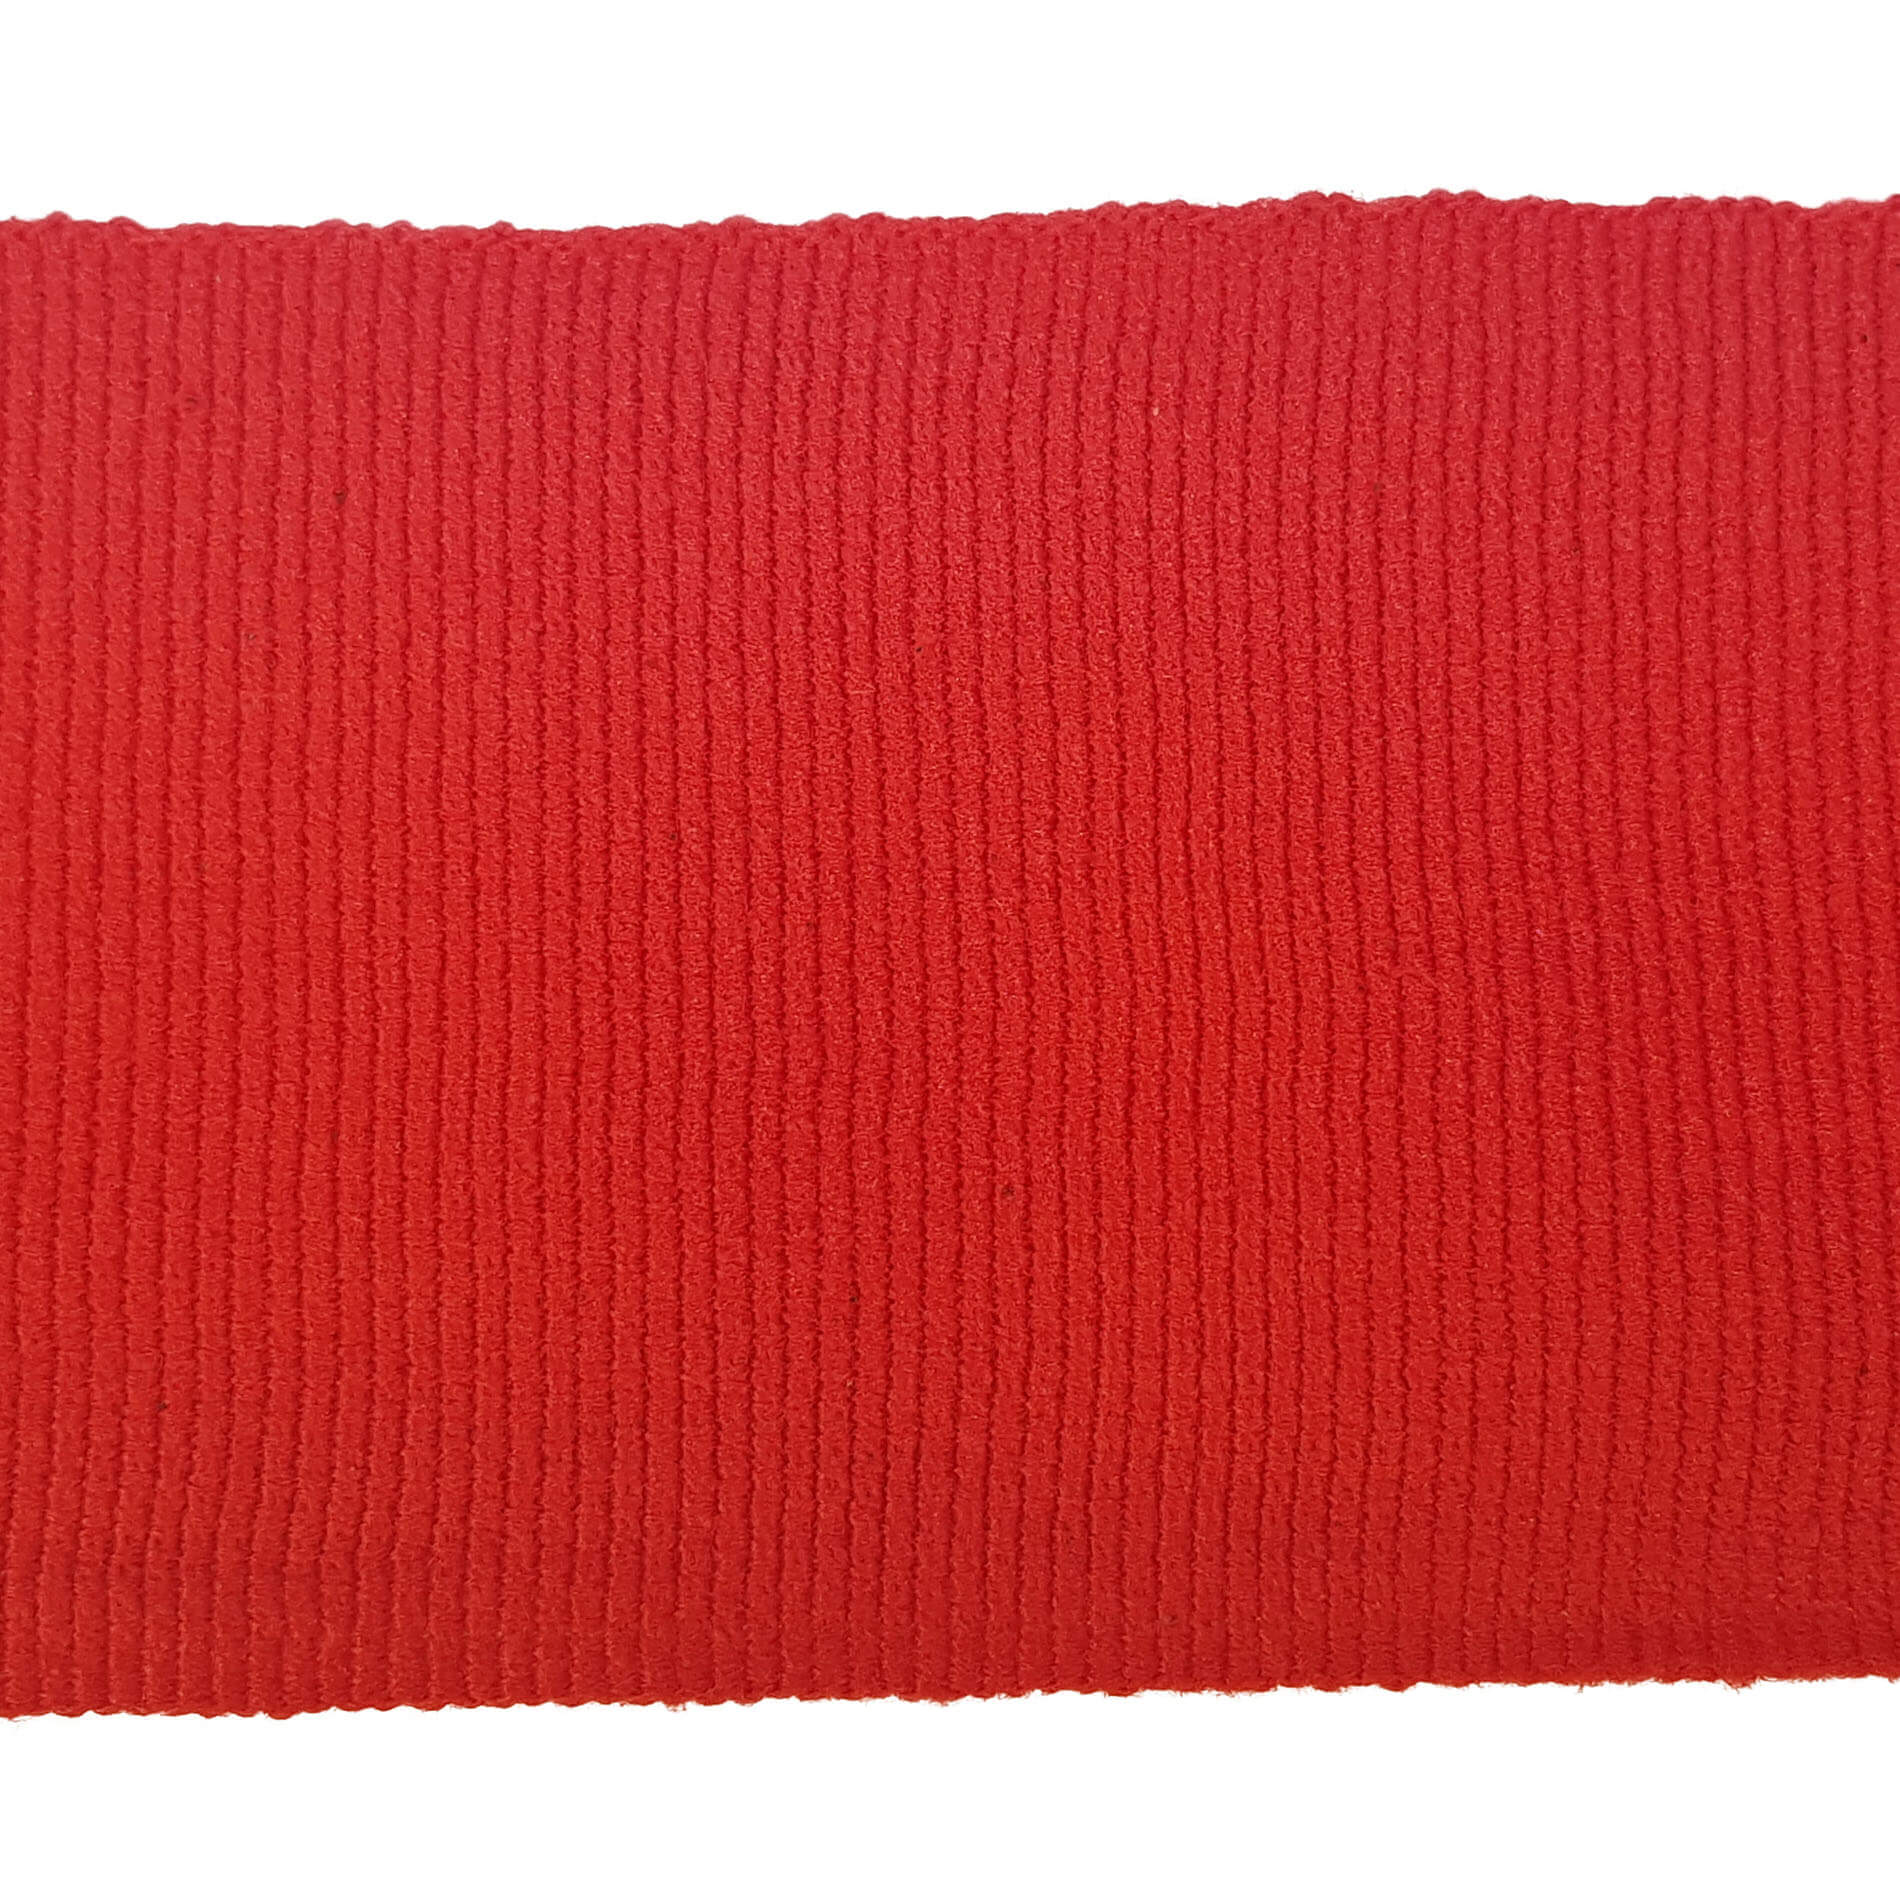 Boxing Wraps 250 cm, Pair - Red